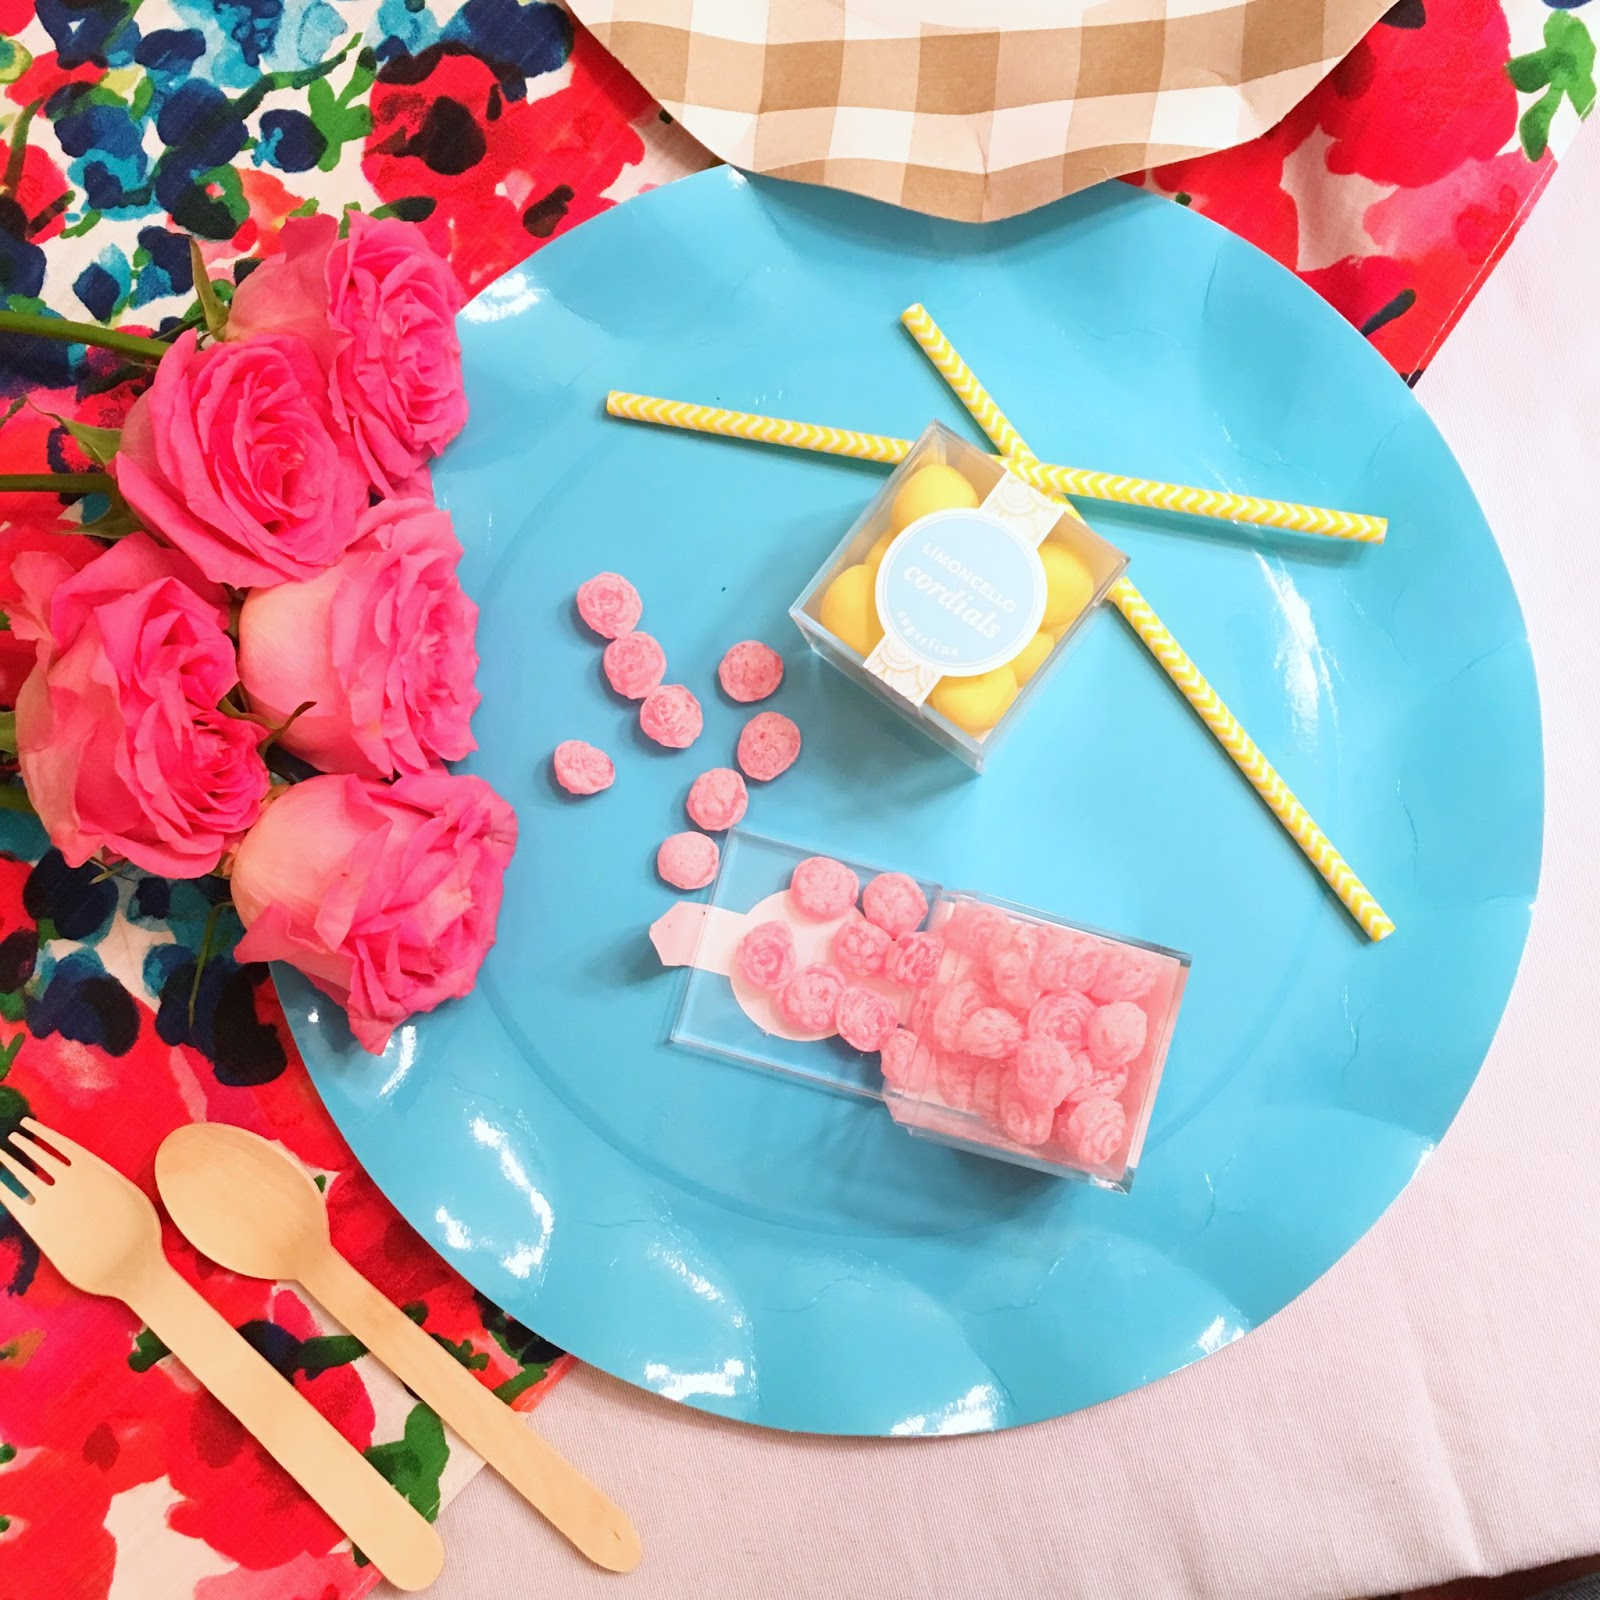 Kentucky Derby Table Decorations by popular party blogger Celebration Stylist